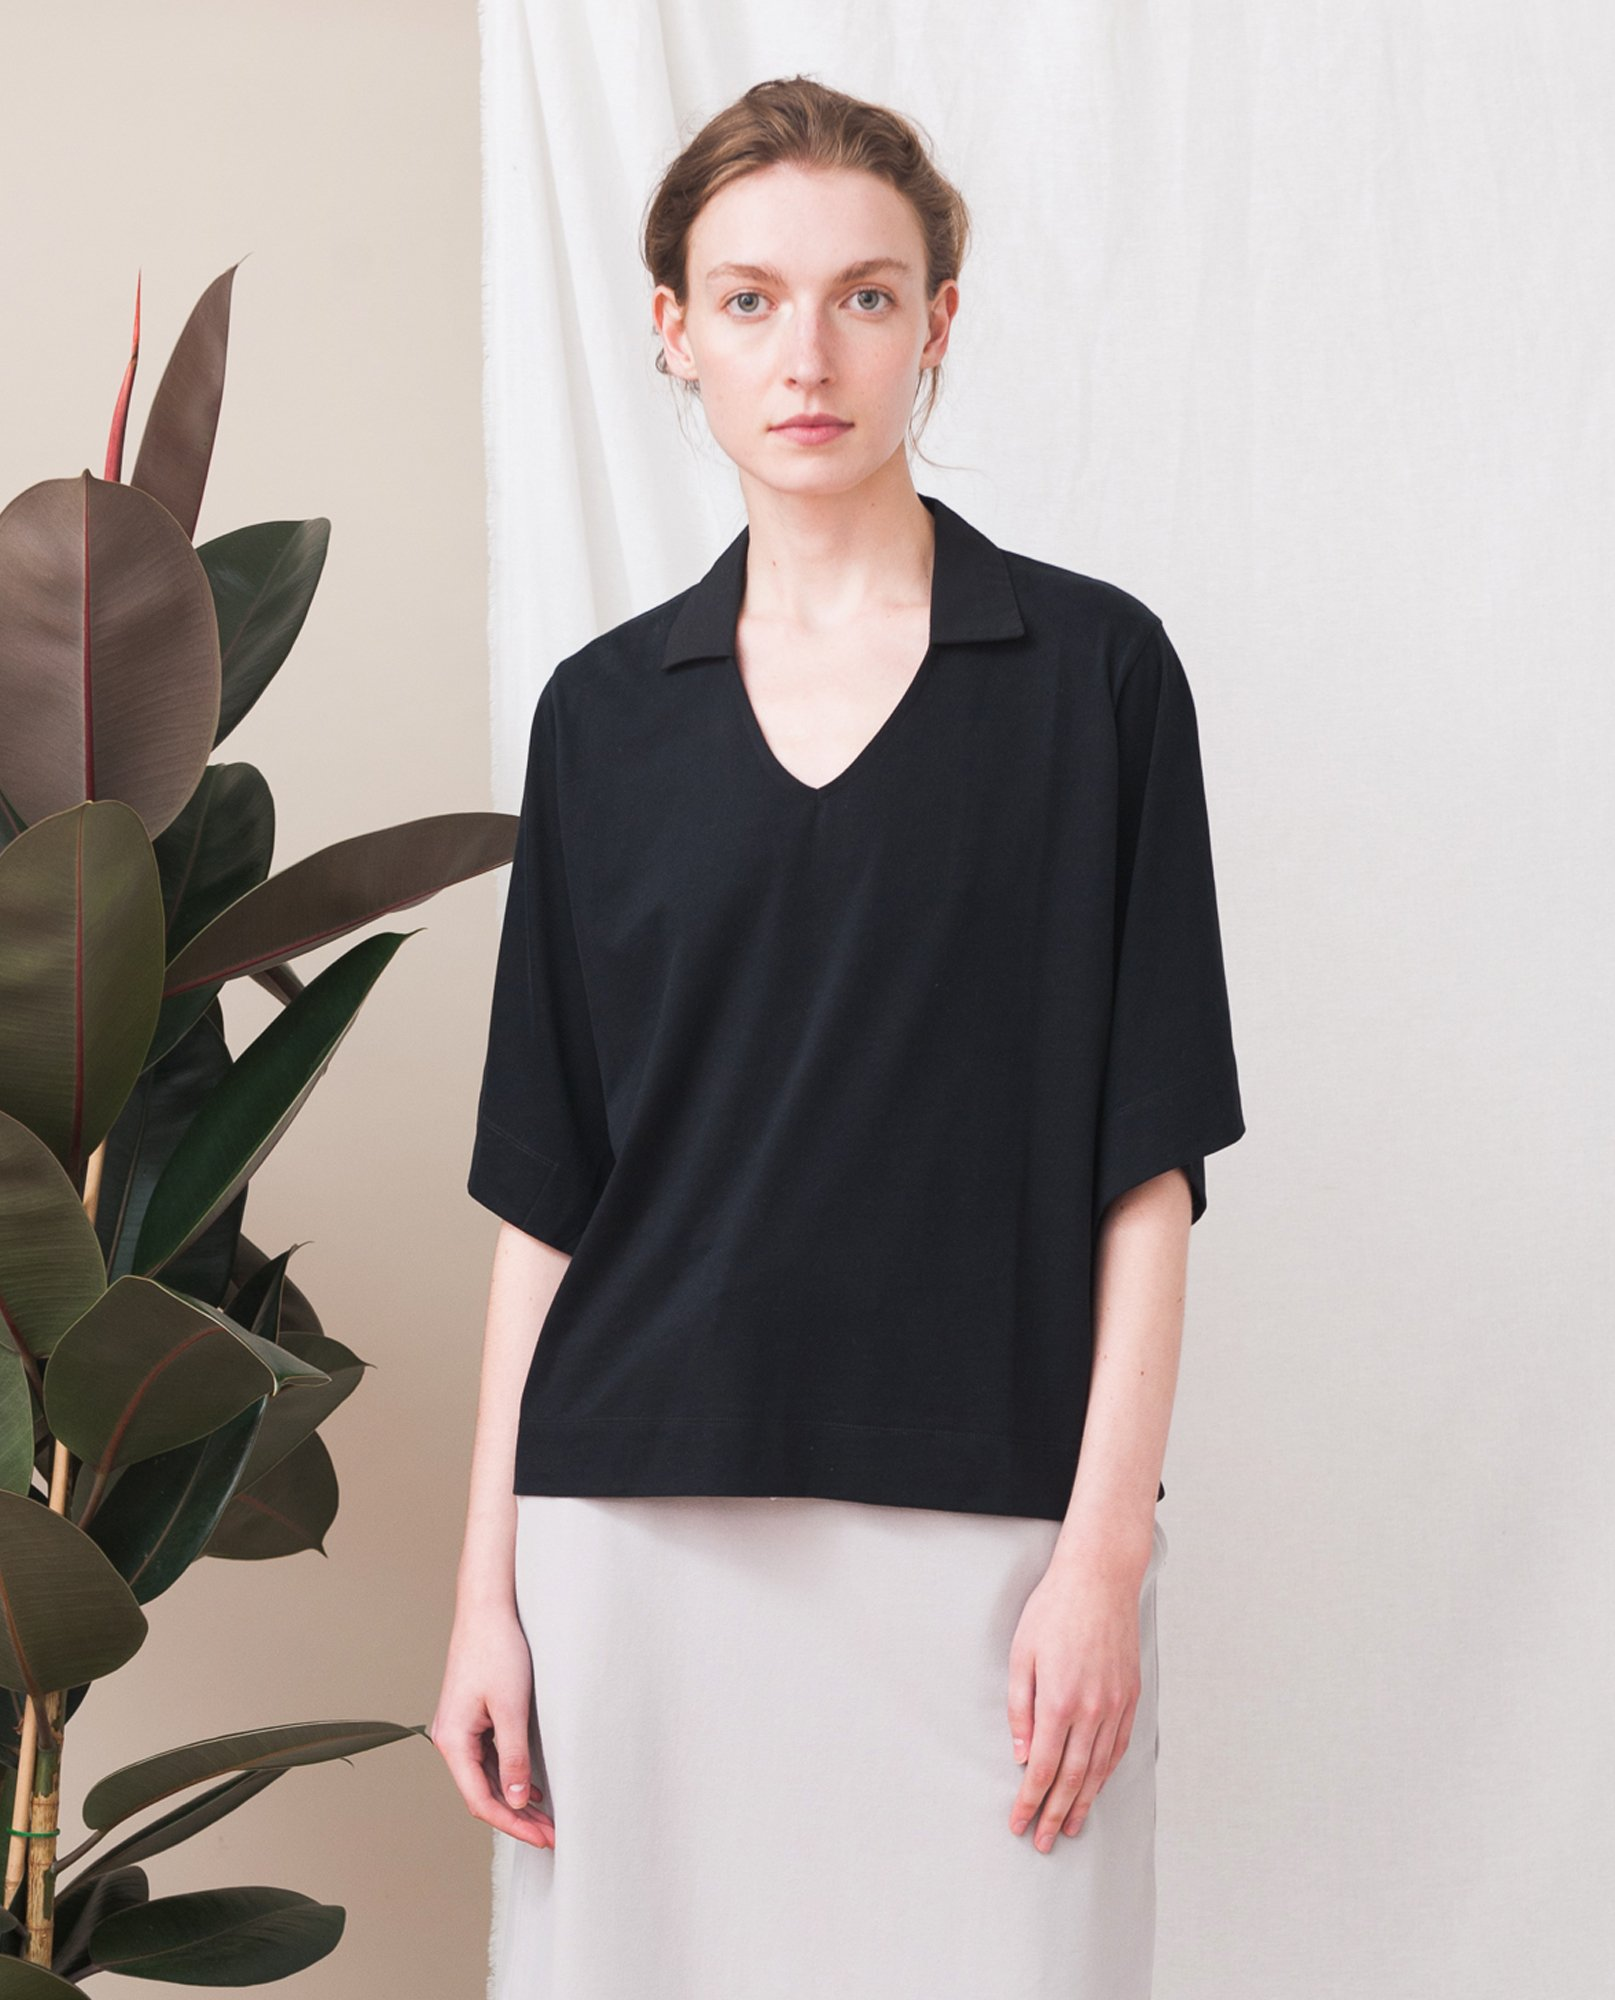 LIZ Organic Cotton Top In Black from Beaumont Organic